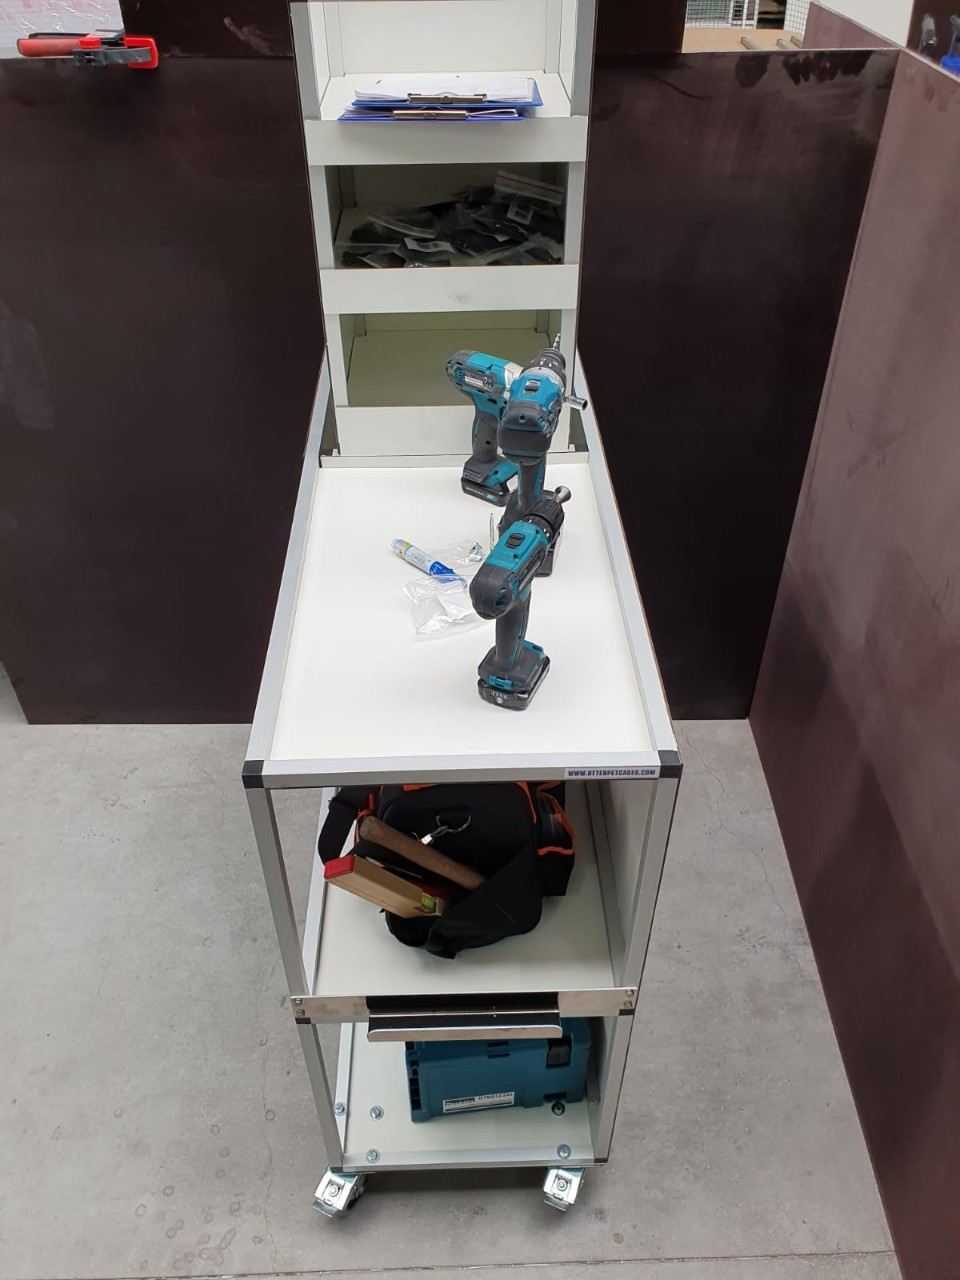 Tooltrolly # (4)